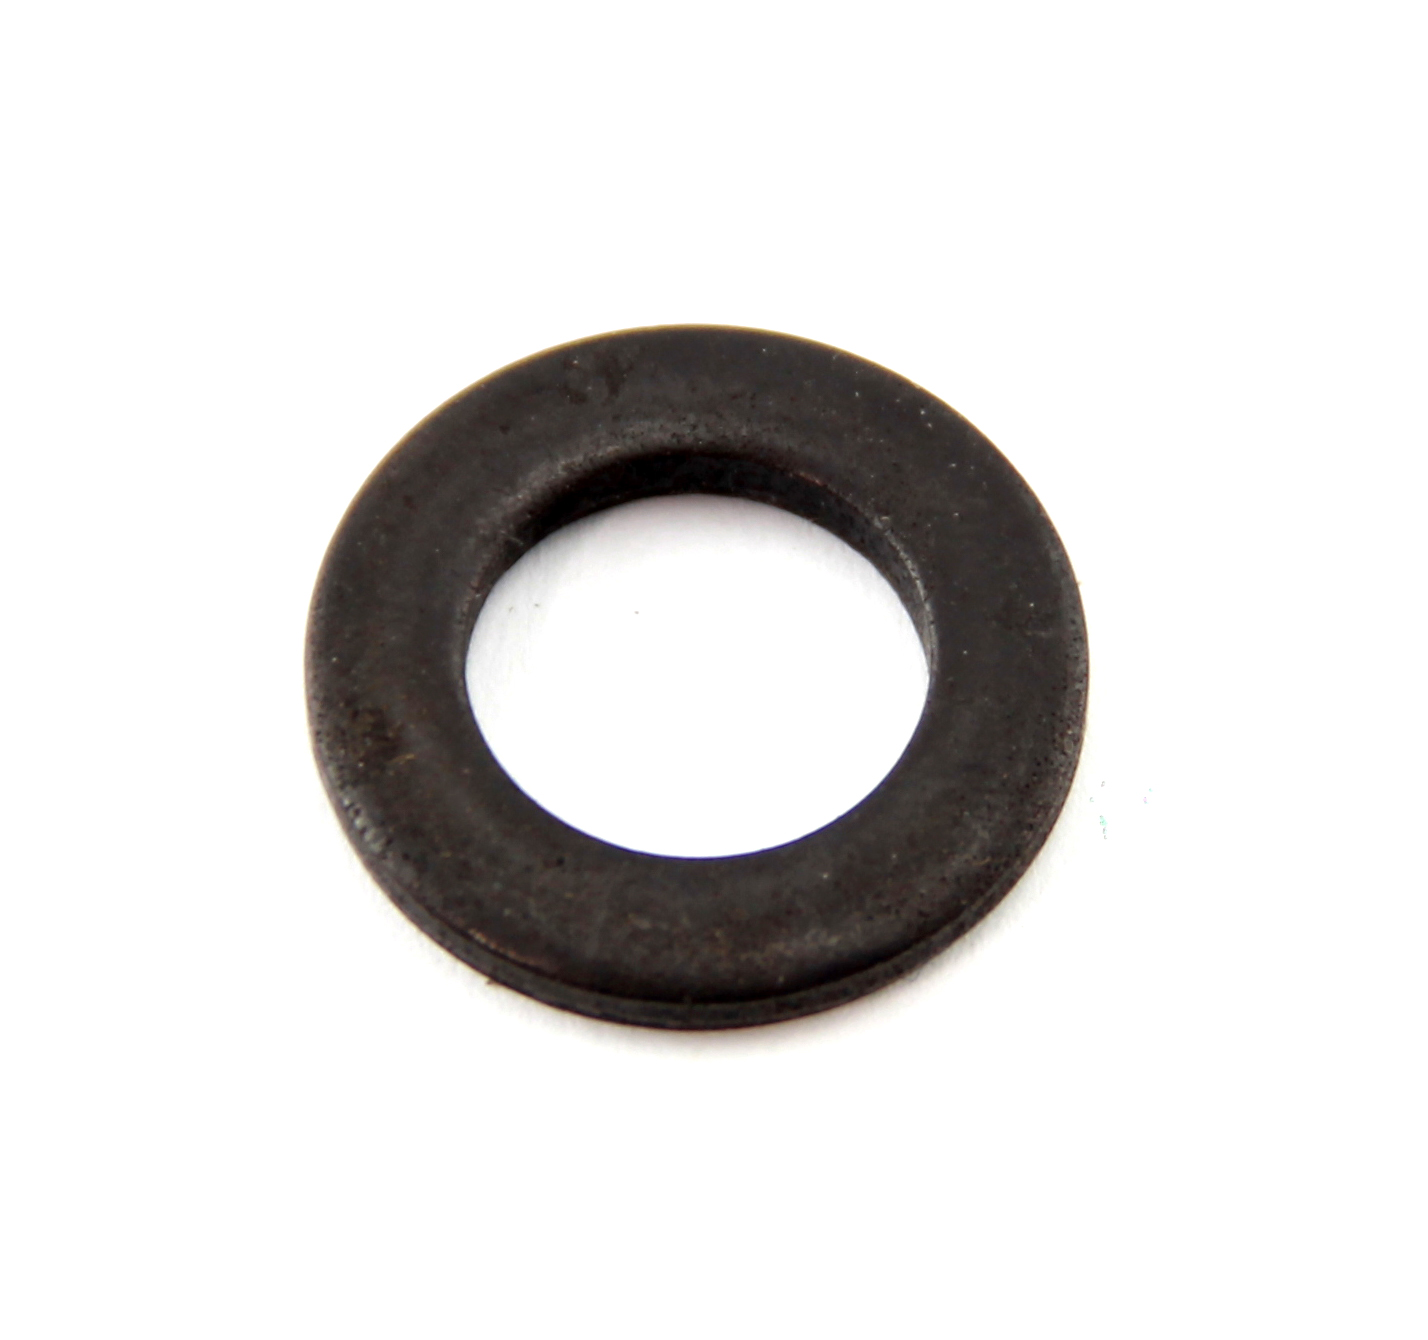 "7/16"" Main Girdle Black Oxide Hardened Ground Washer"